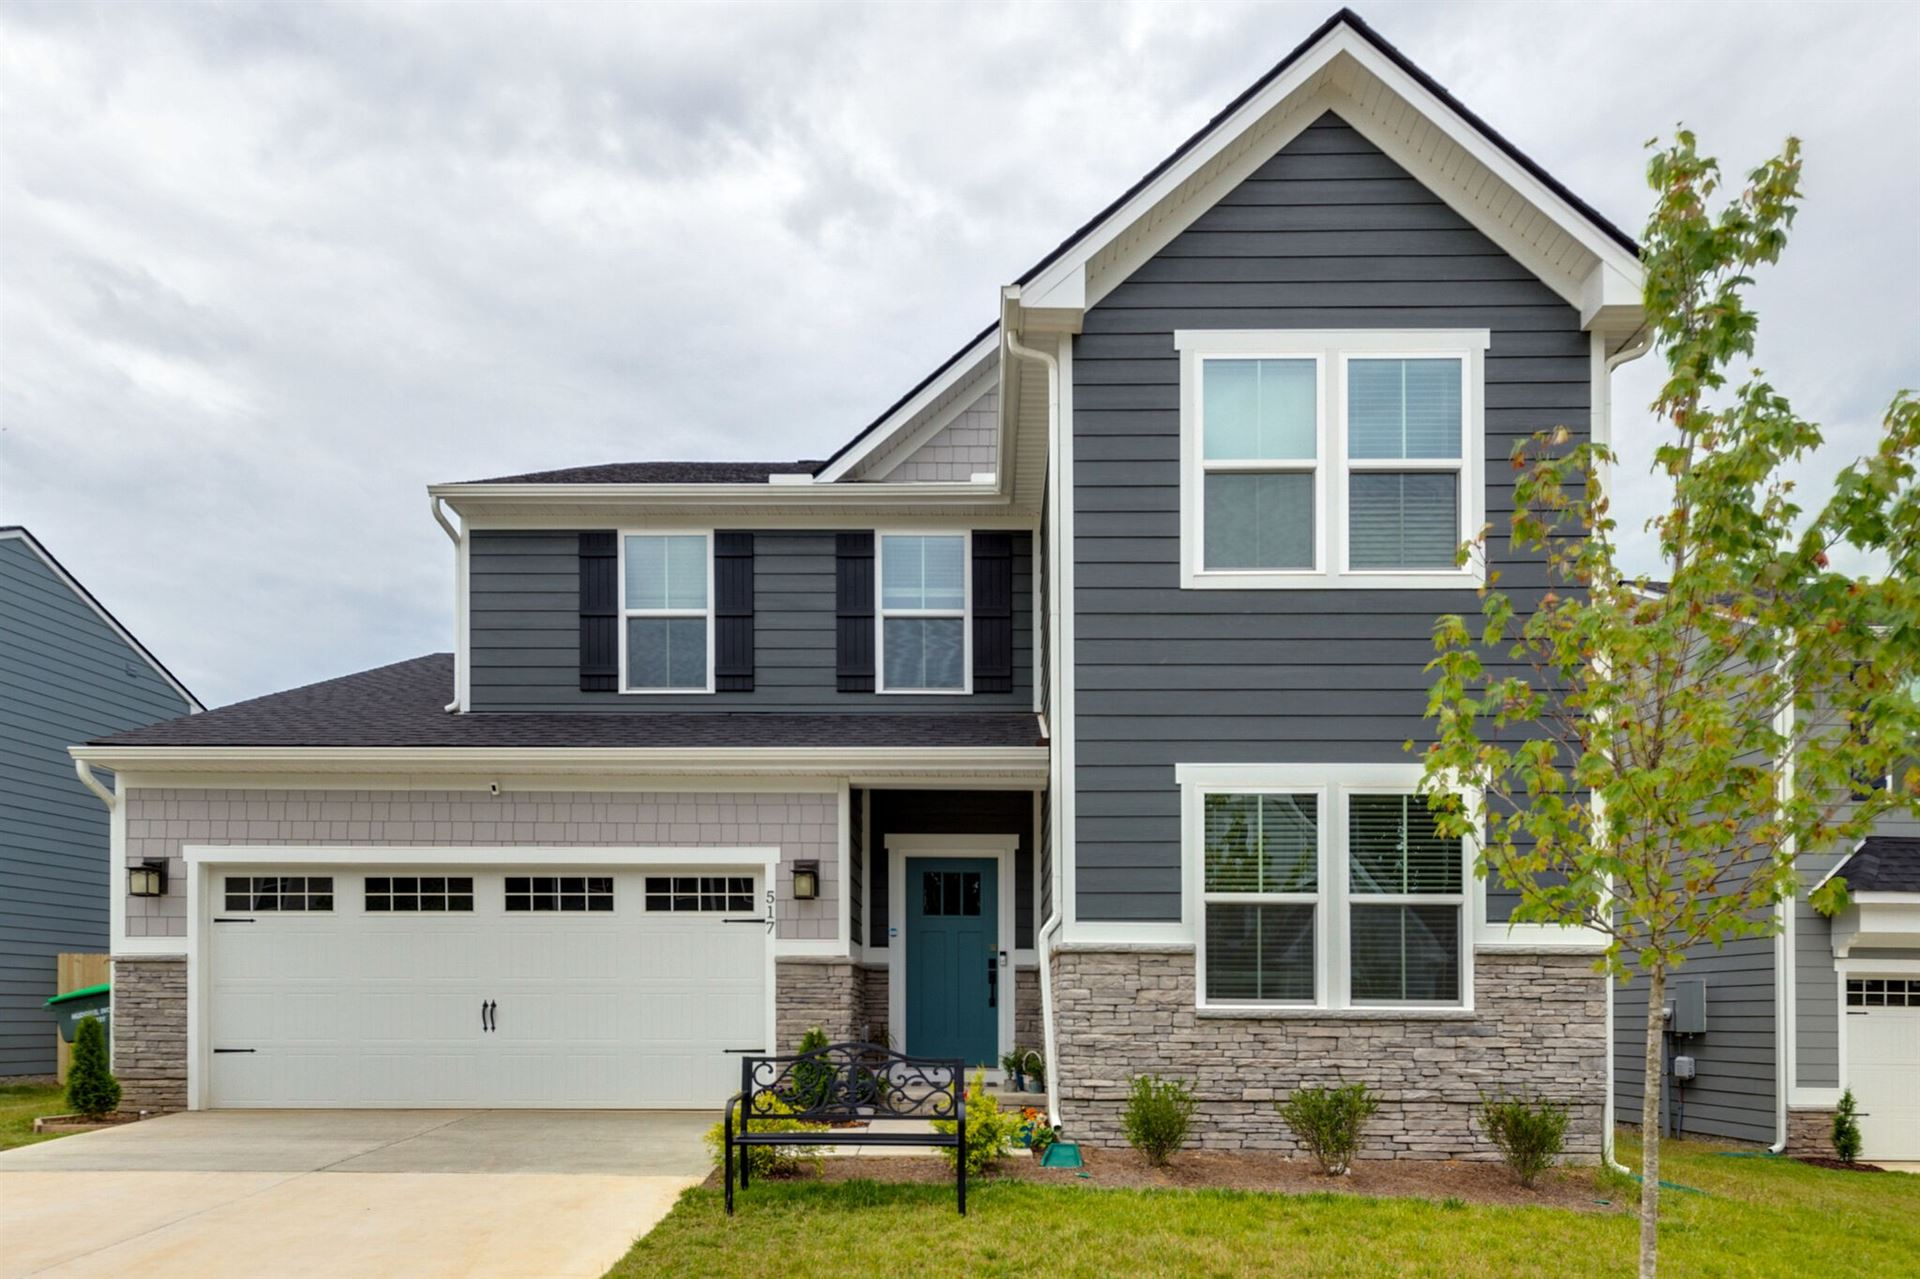 517 Red Hill Ct, Brentwood, TN 37027 - MLS#: 2262953